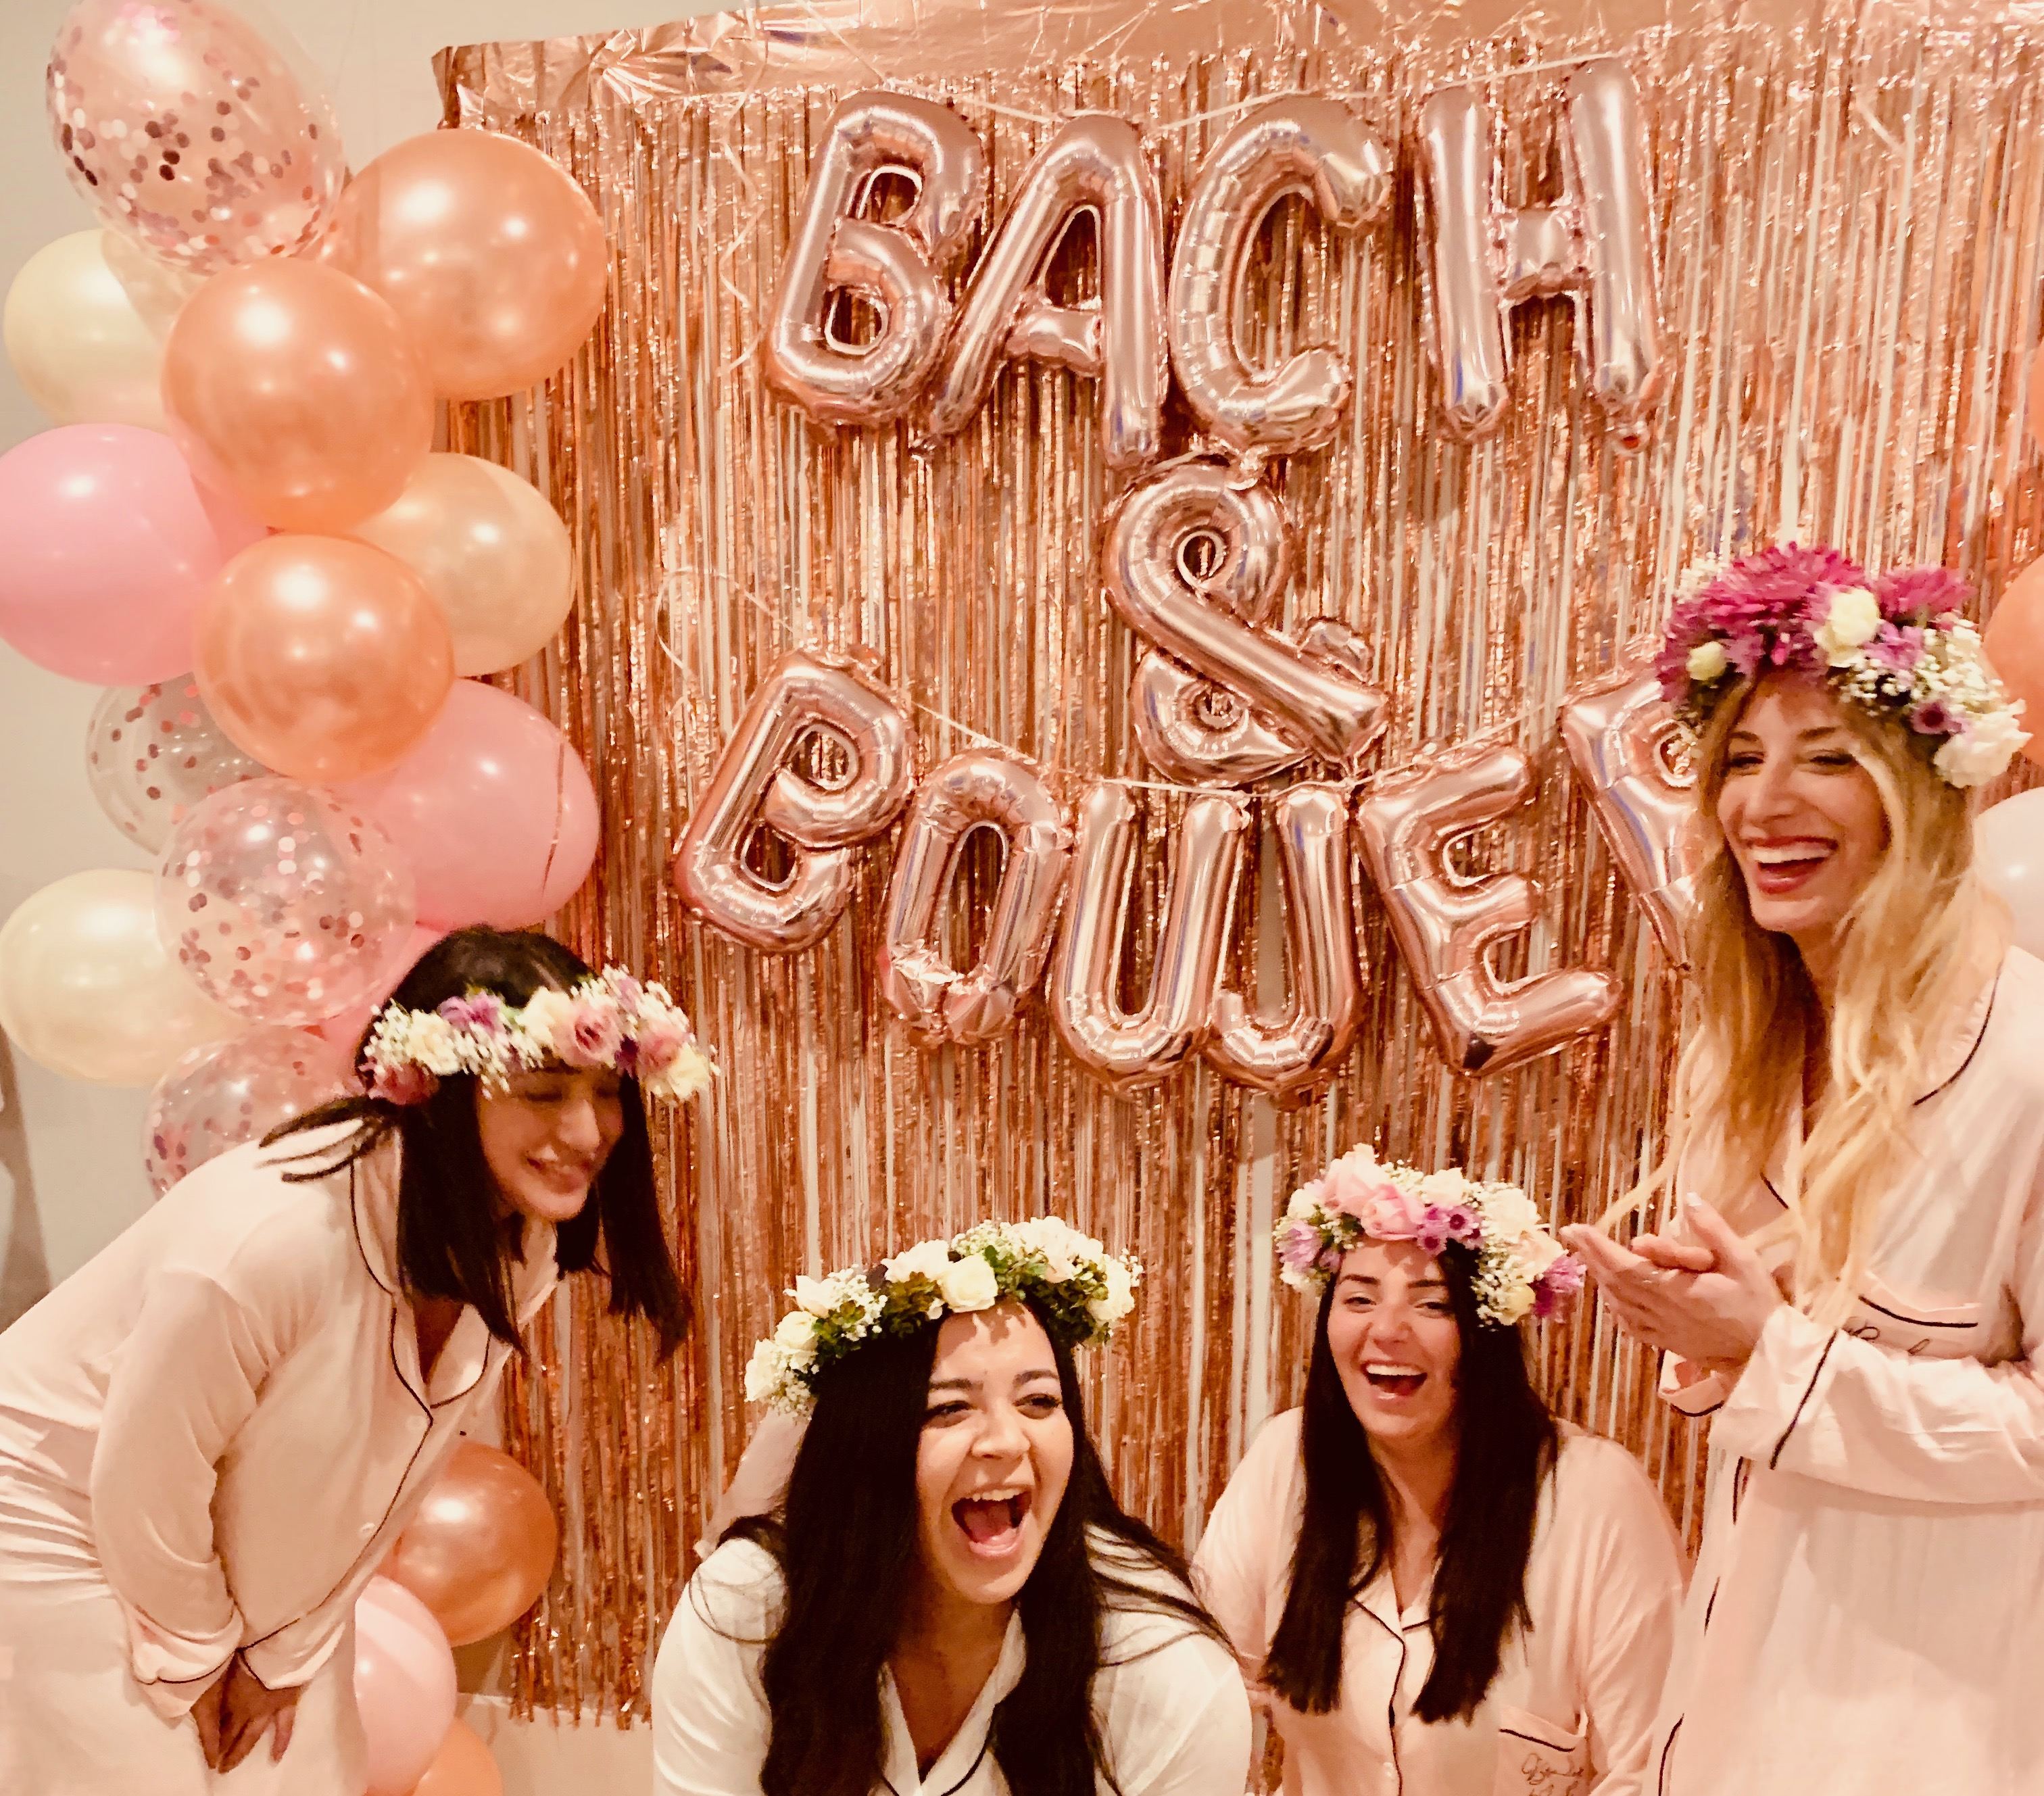 how to have a bach and boujee bachelorette party